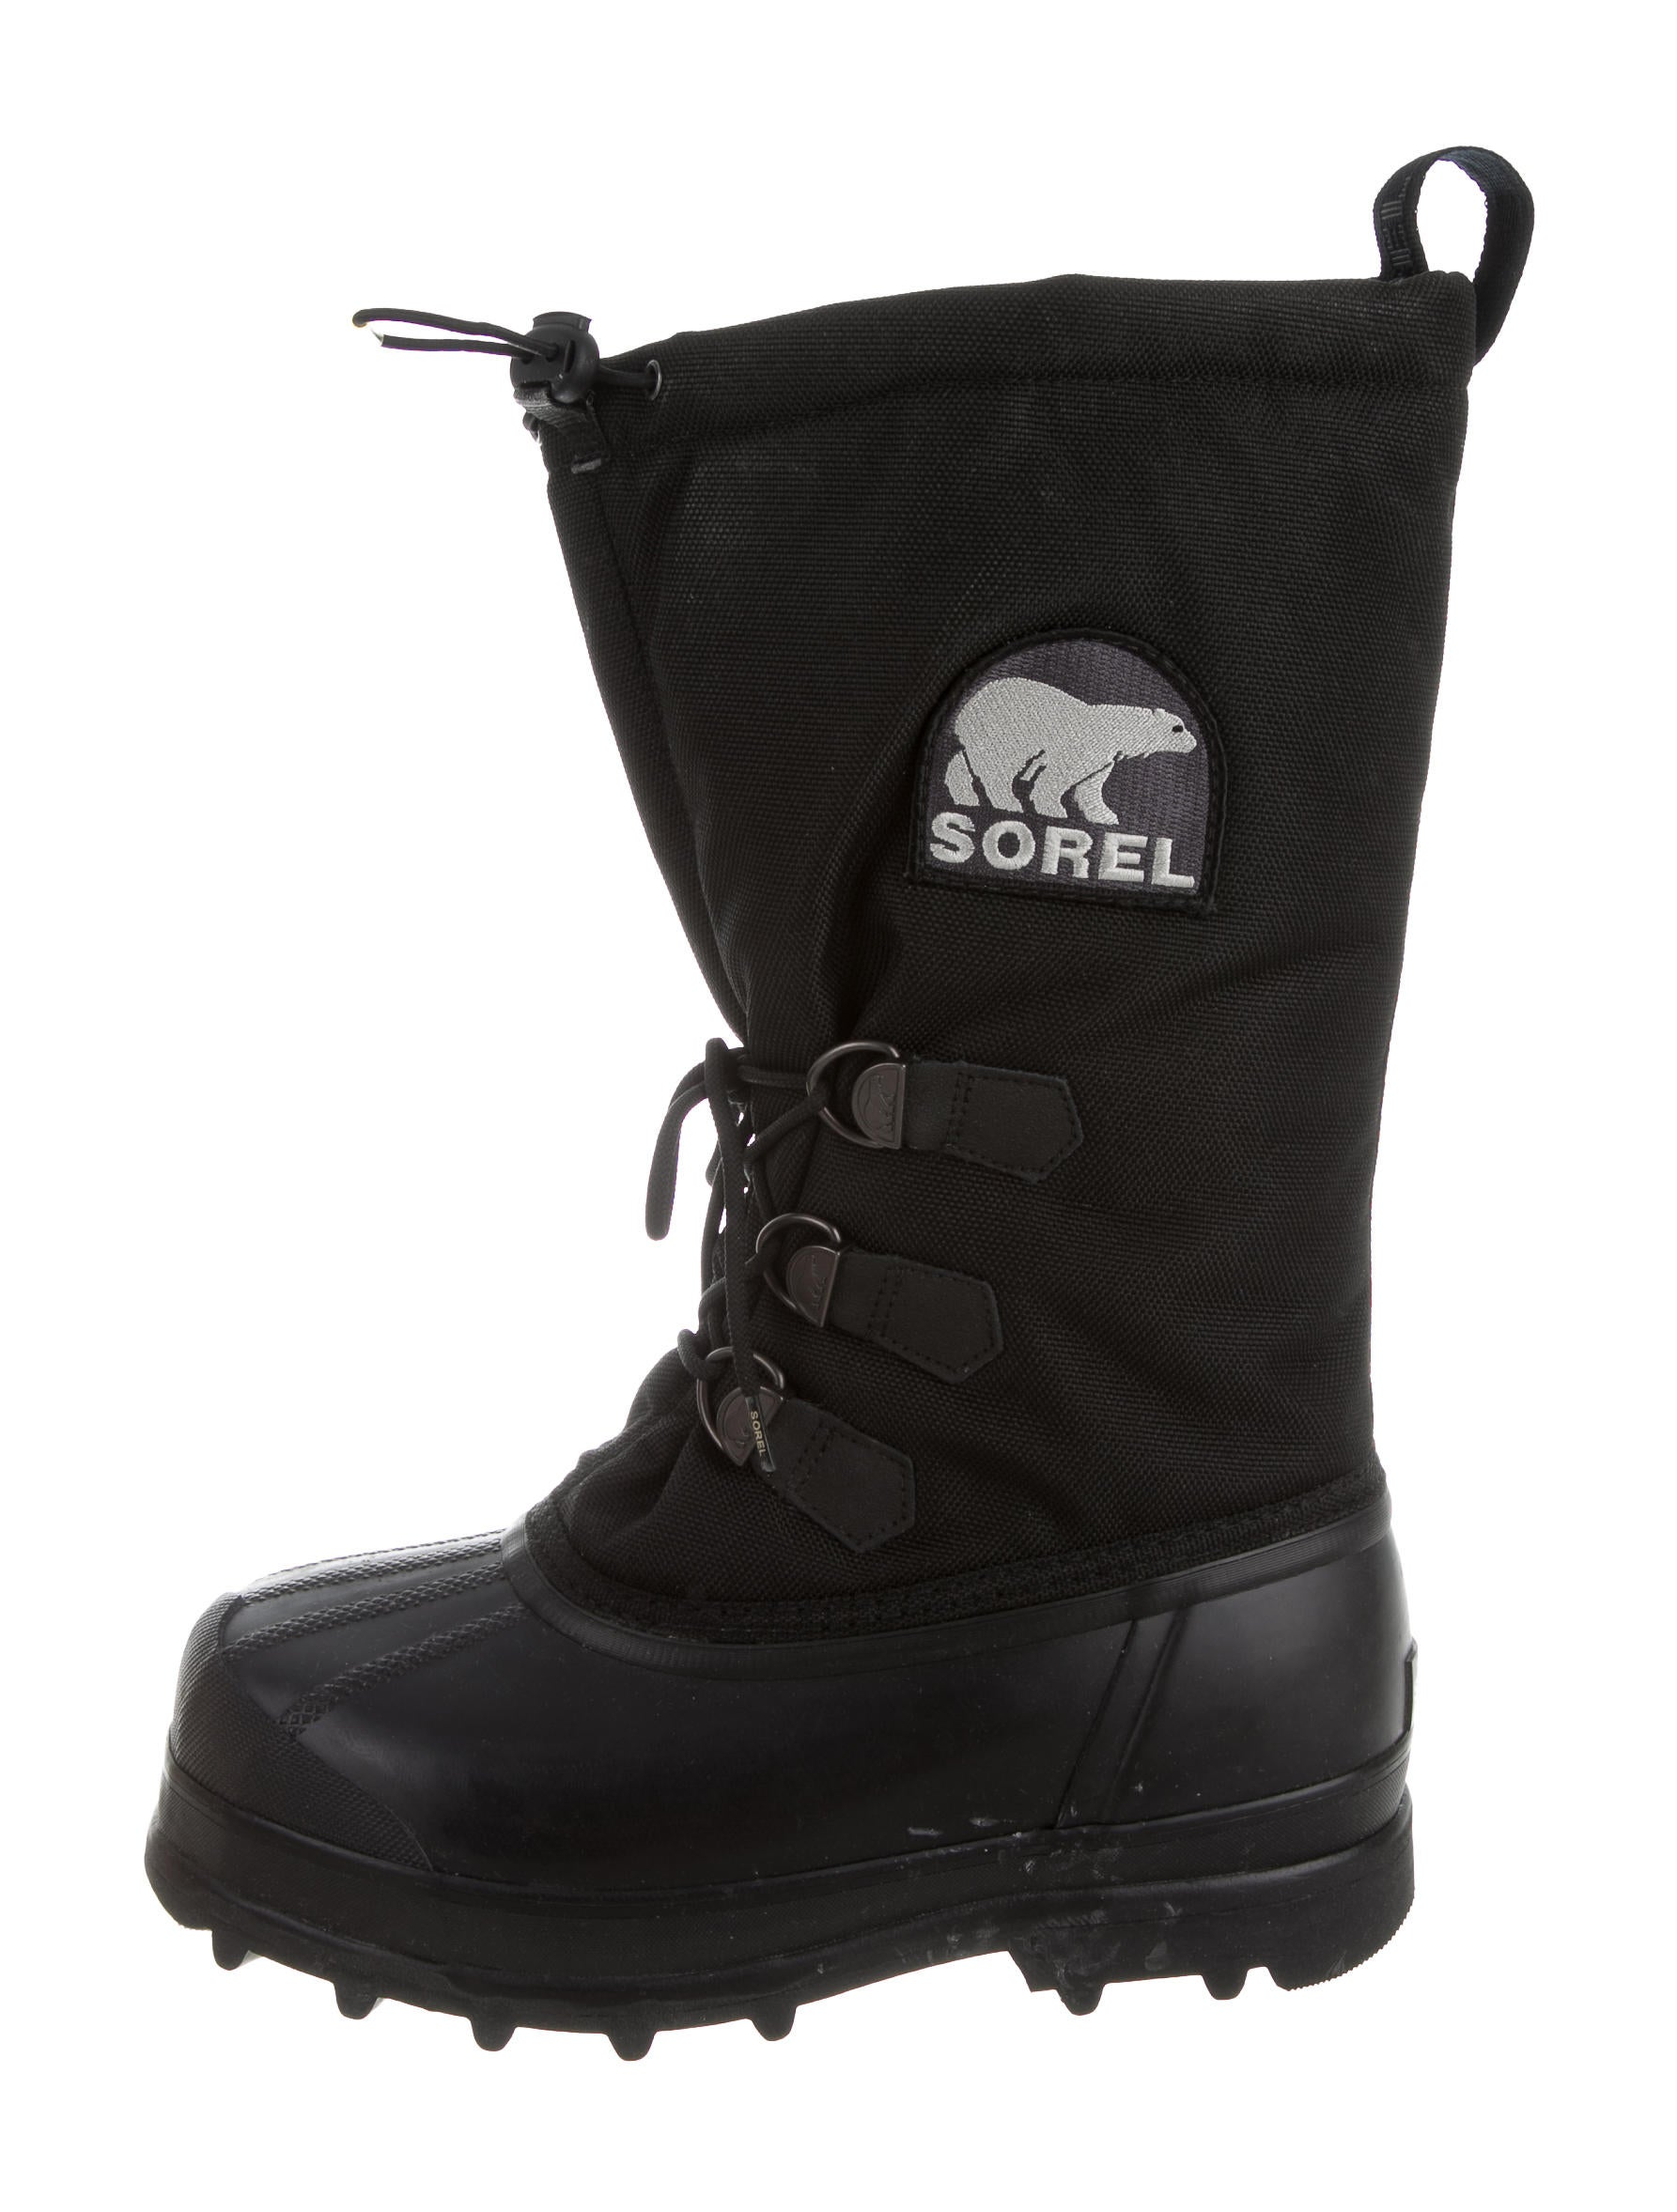 sorel knee high snow boots shoes wsorl20187 the realreal